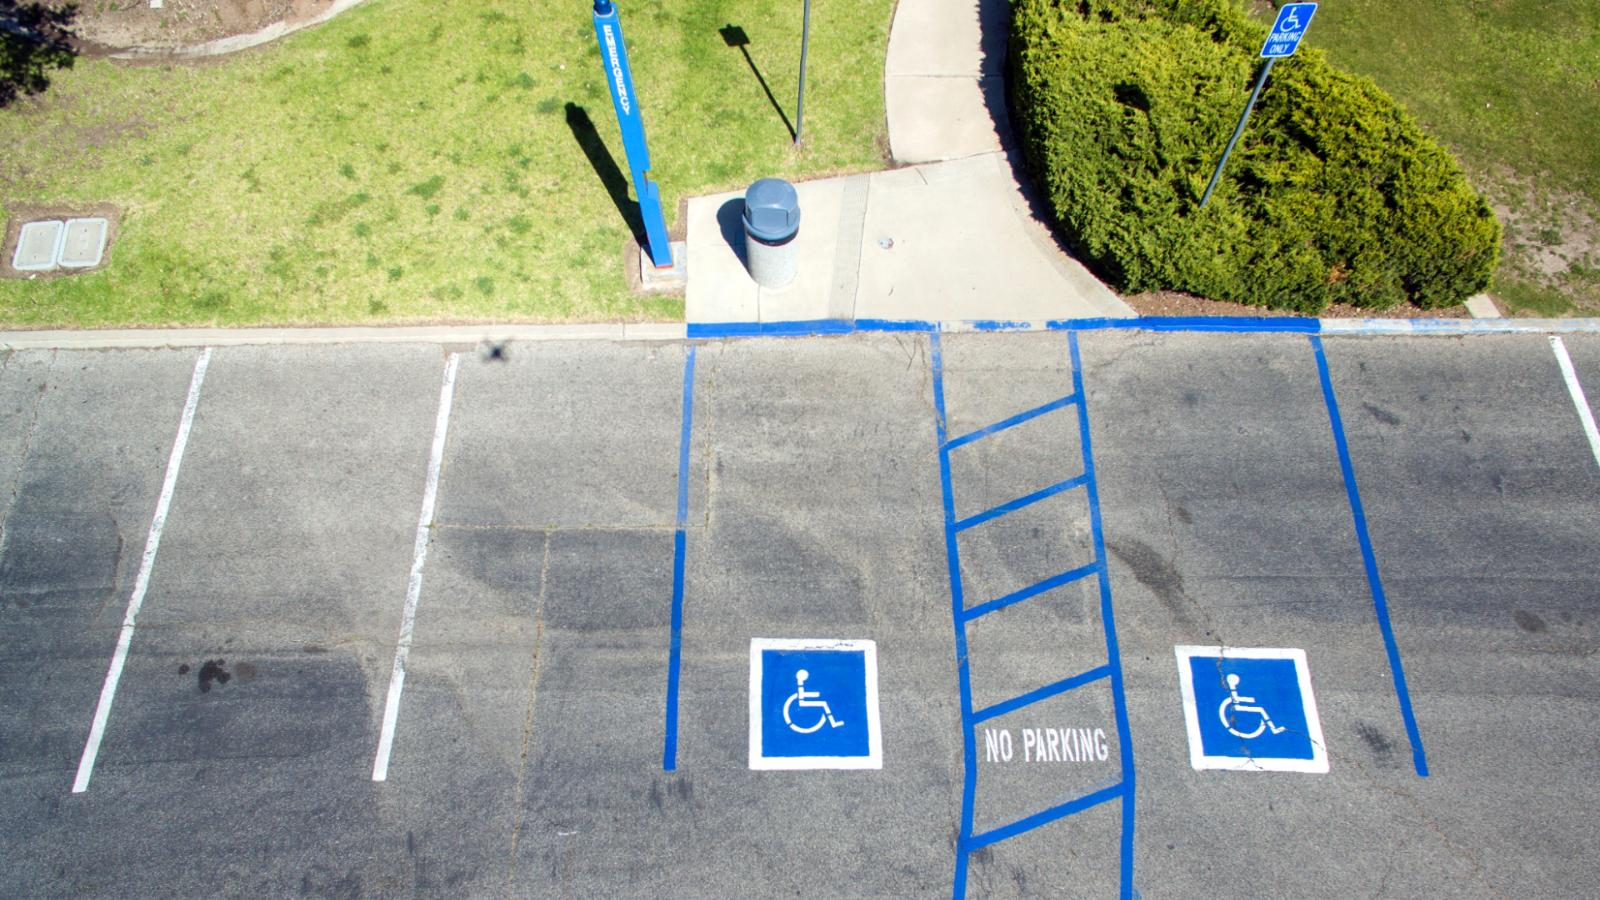 Accessibility at work: not just ramps and elevators